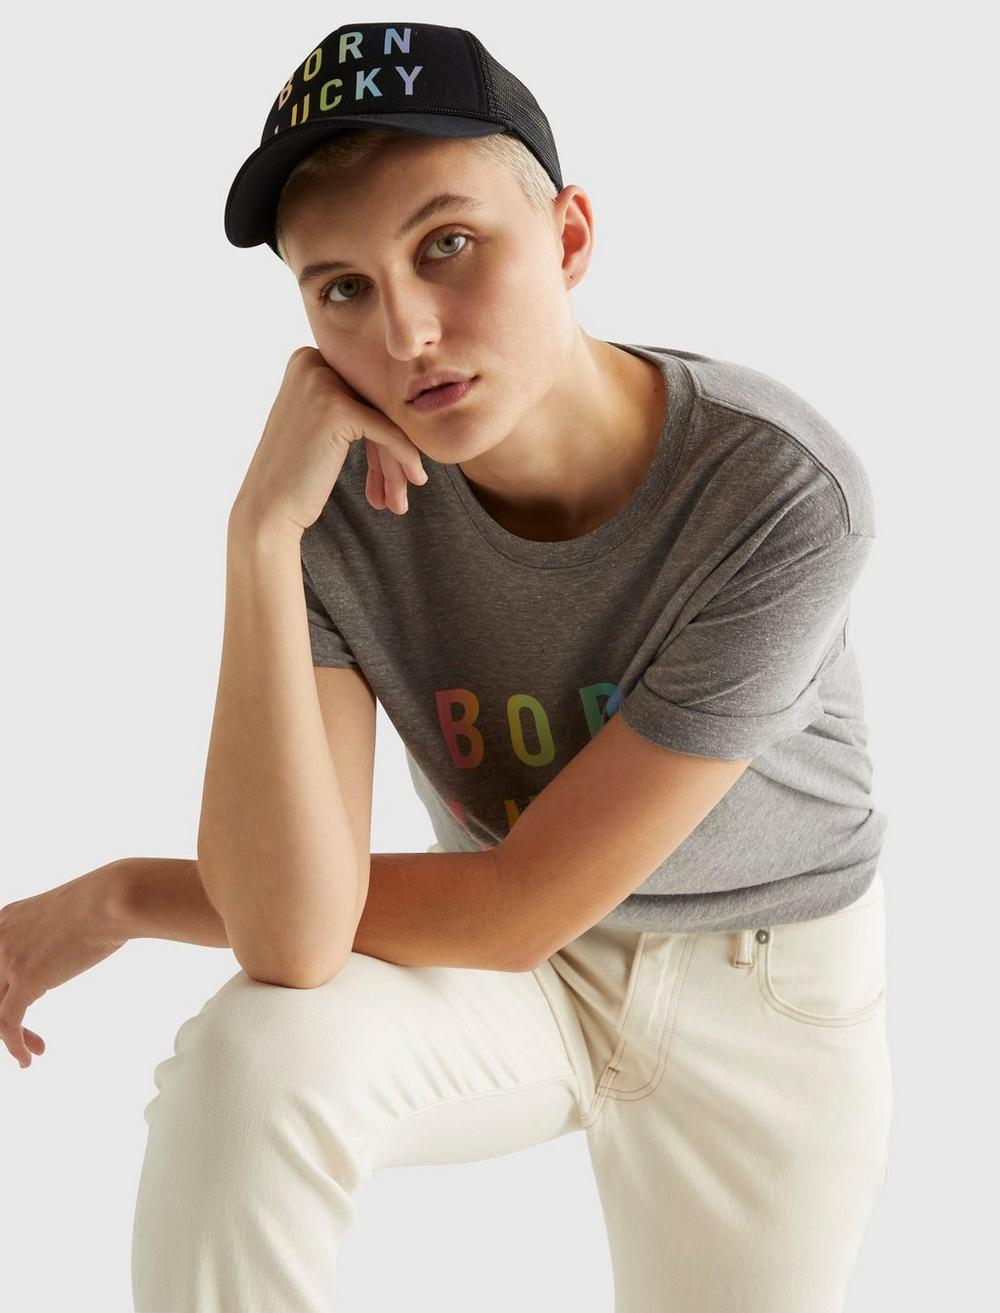 PRIDE BORN LUCKY GENDER NEUTRAL TEE, image 12